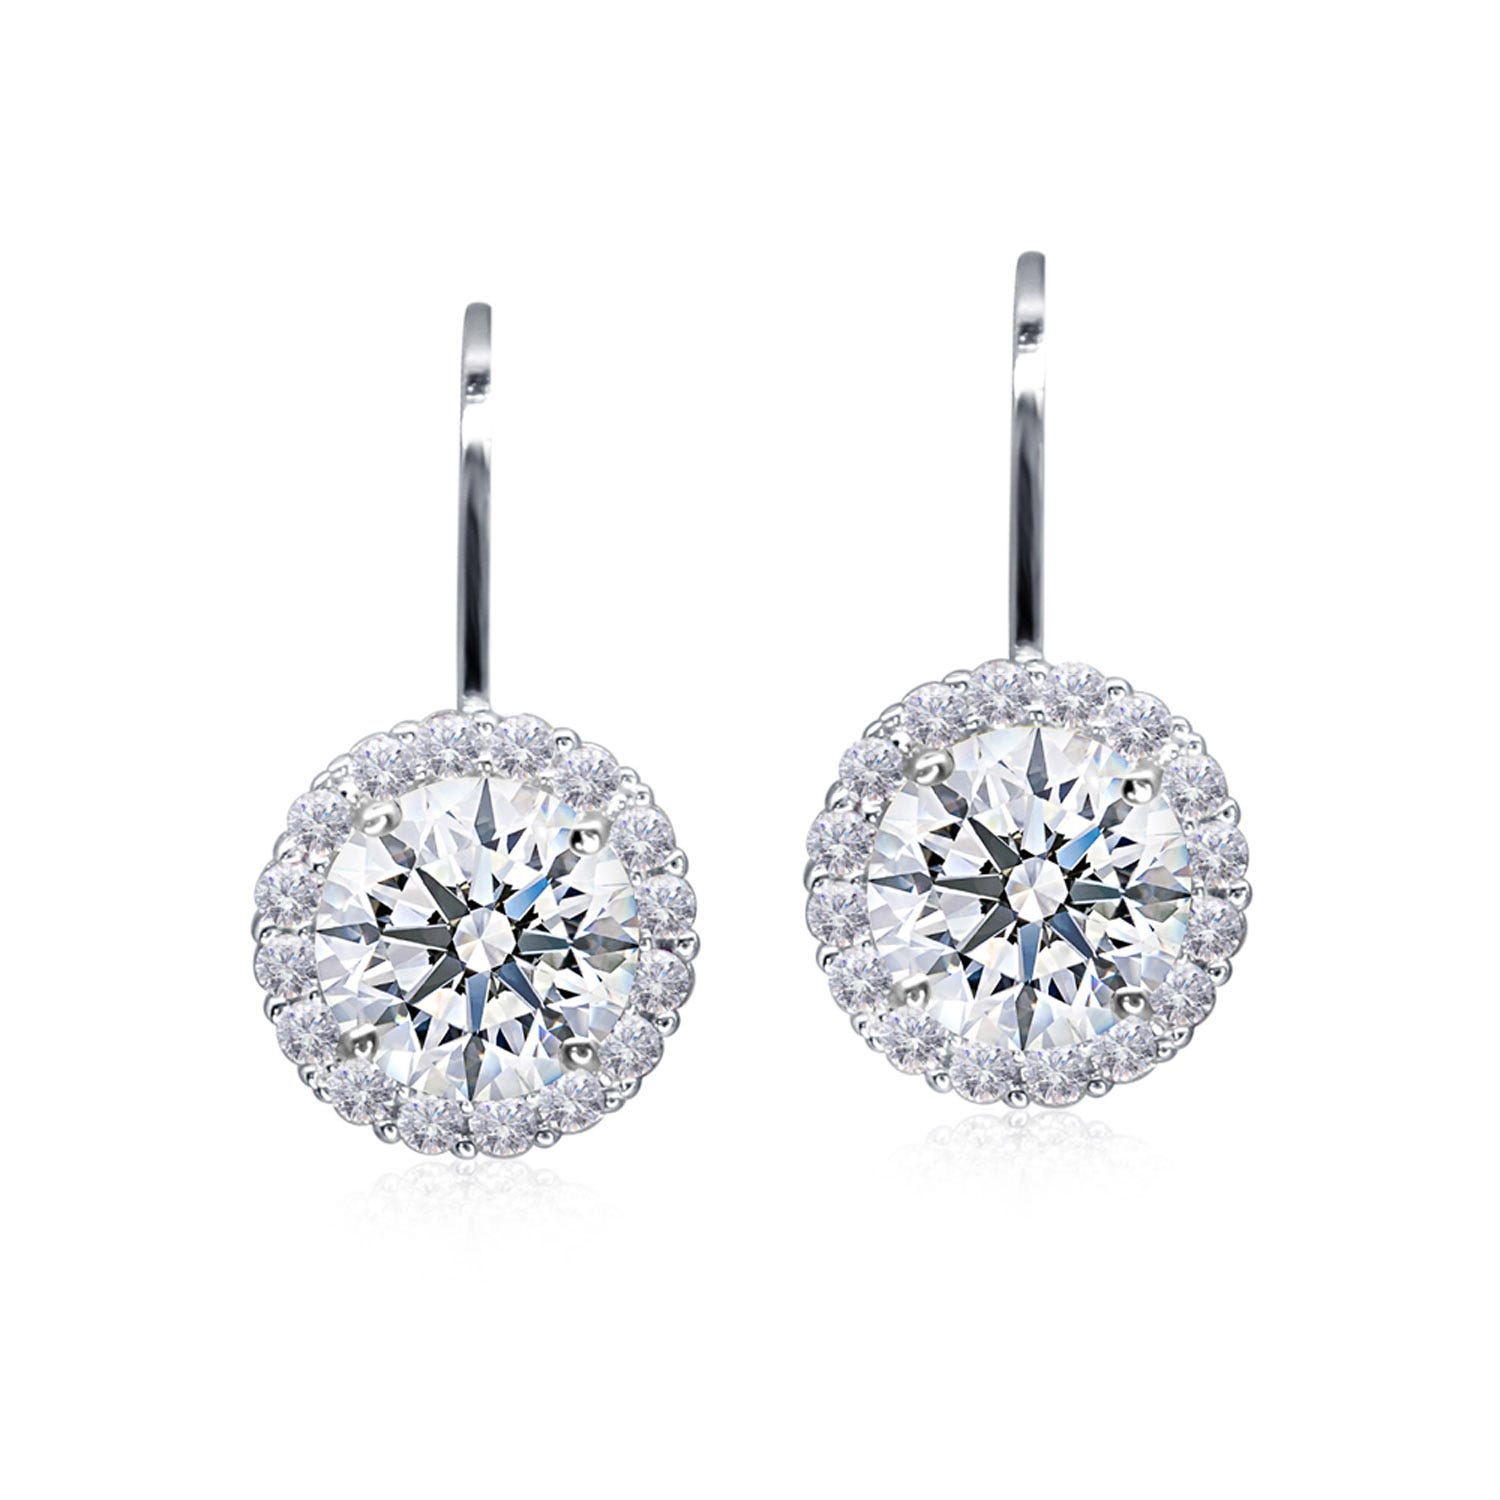 CARAT* London Sterling Silver Lever Back Border Set Drop Earrings Featuring A 6.5mm Centre Stone